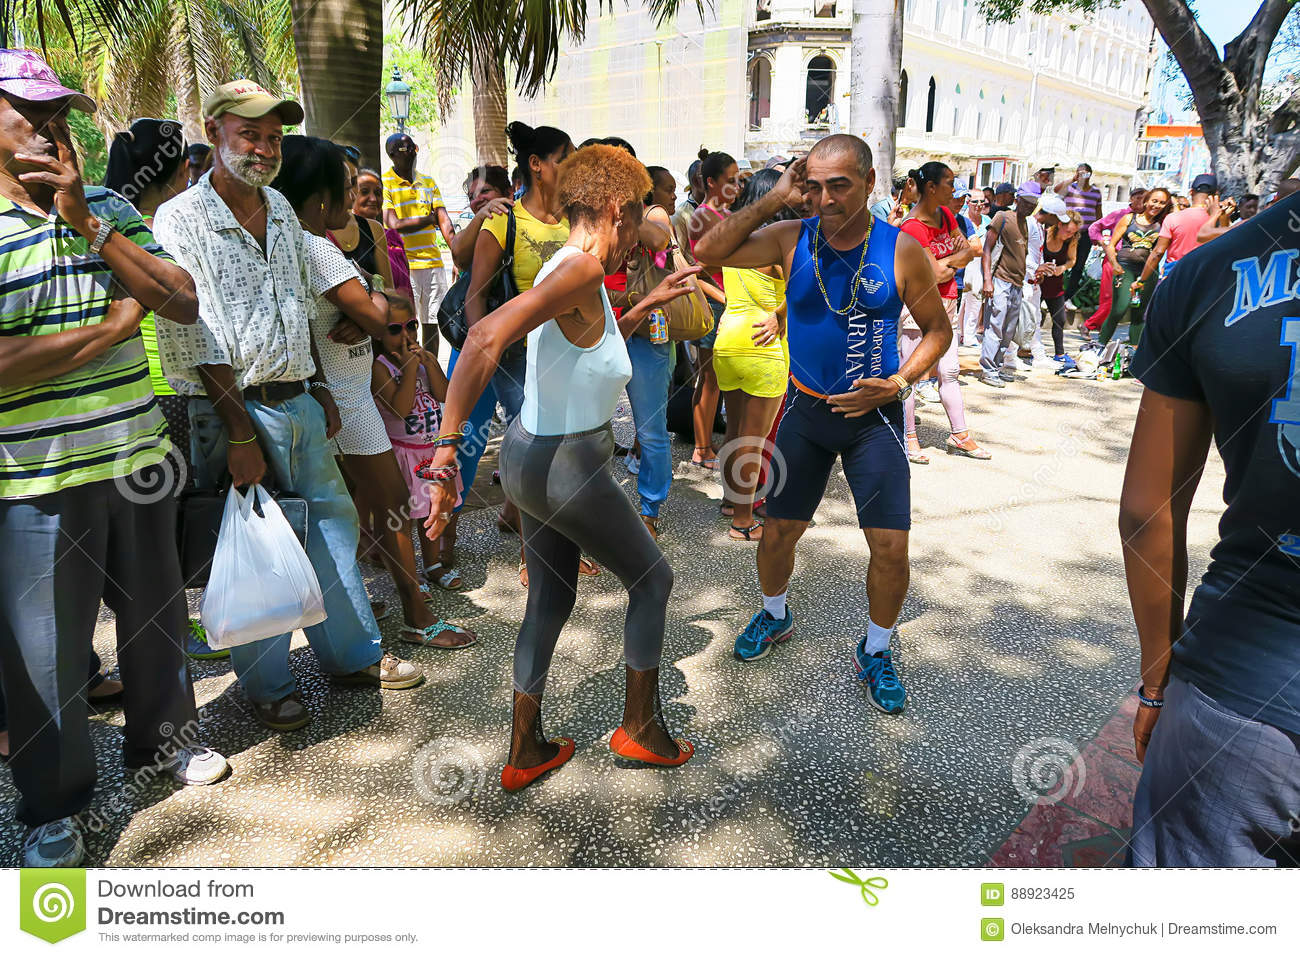 Senior street salsa in Havana